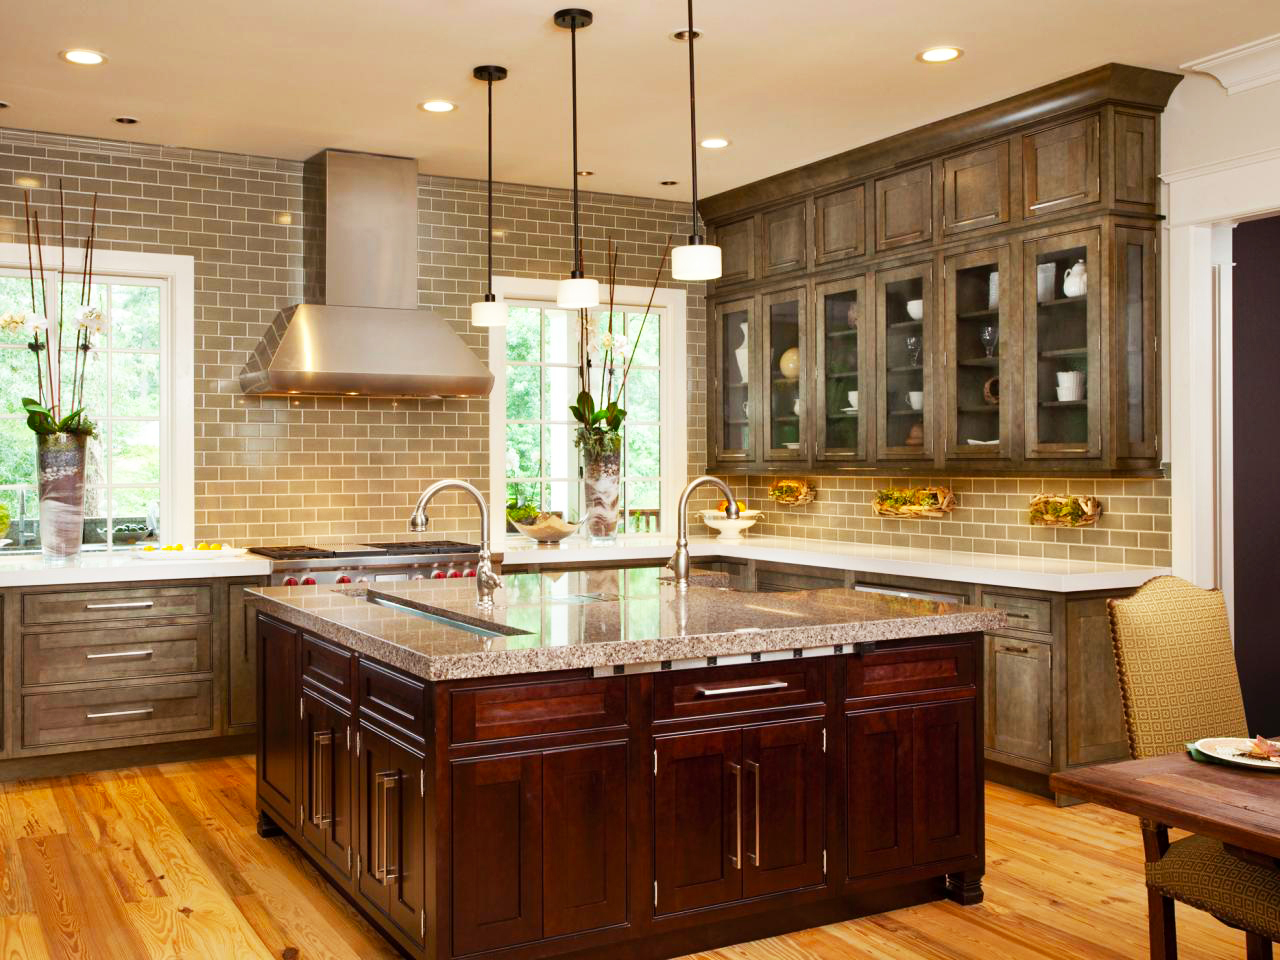 Ideas for custom kitchen cabinets roy home design Kitchen cabinet design modern